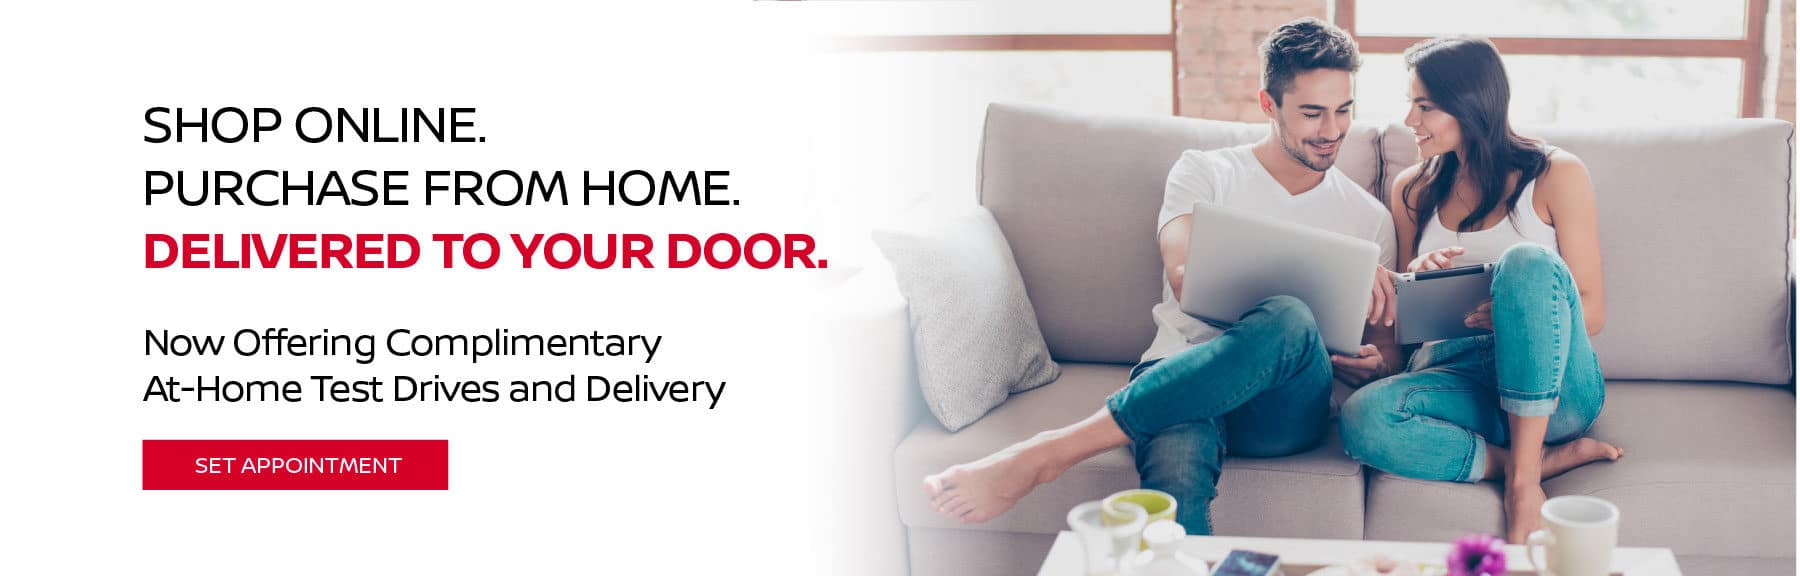 SHOP ONLINE. PURCHASE FROM HOME. DELIVERED TO YOUR DOOR. NOW OFFERING COMPLIMENTARY AT-HOME TEST DRIVES AND DELIVERY SET APPOINTMENT